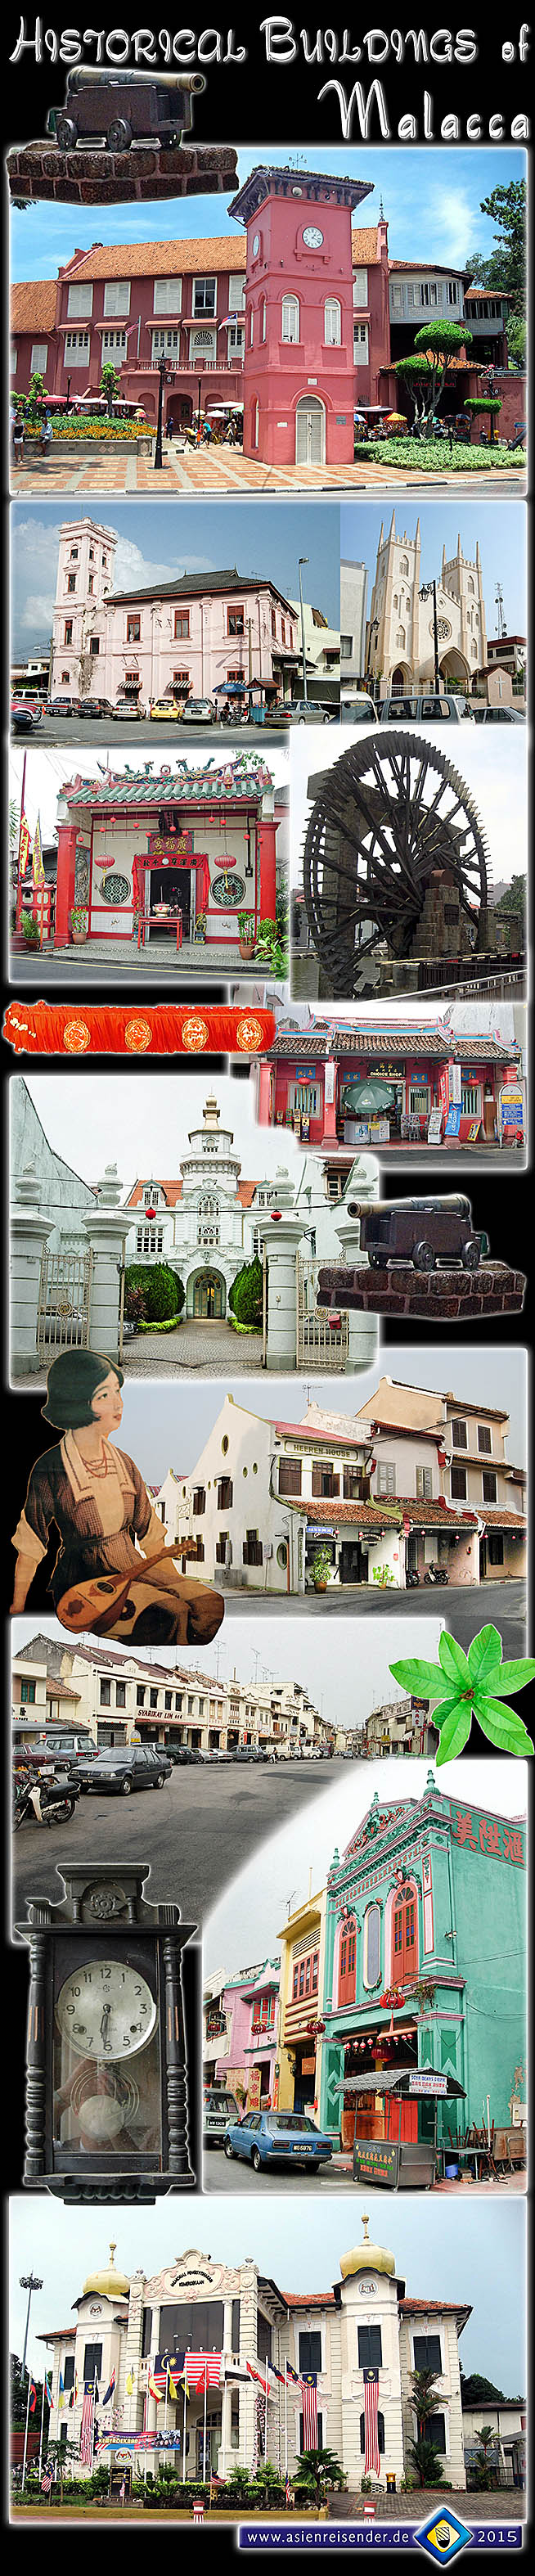 Photocomposition 'Historical Buildings in Malacca' by Asienreisender